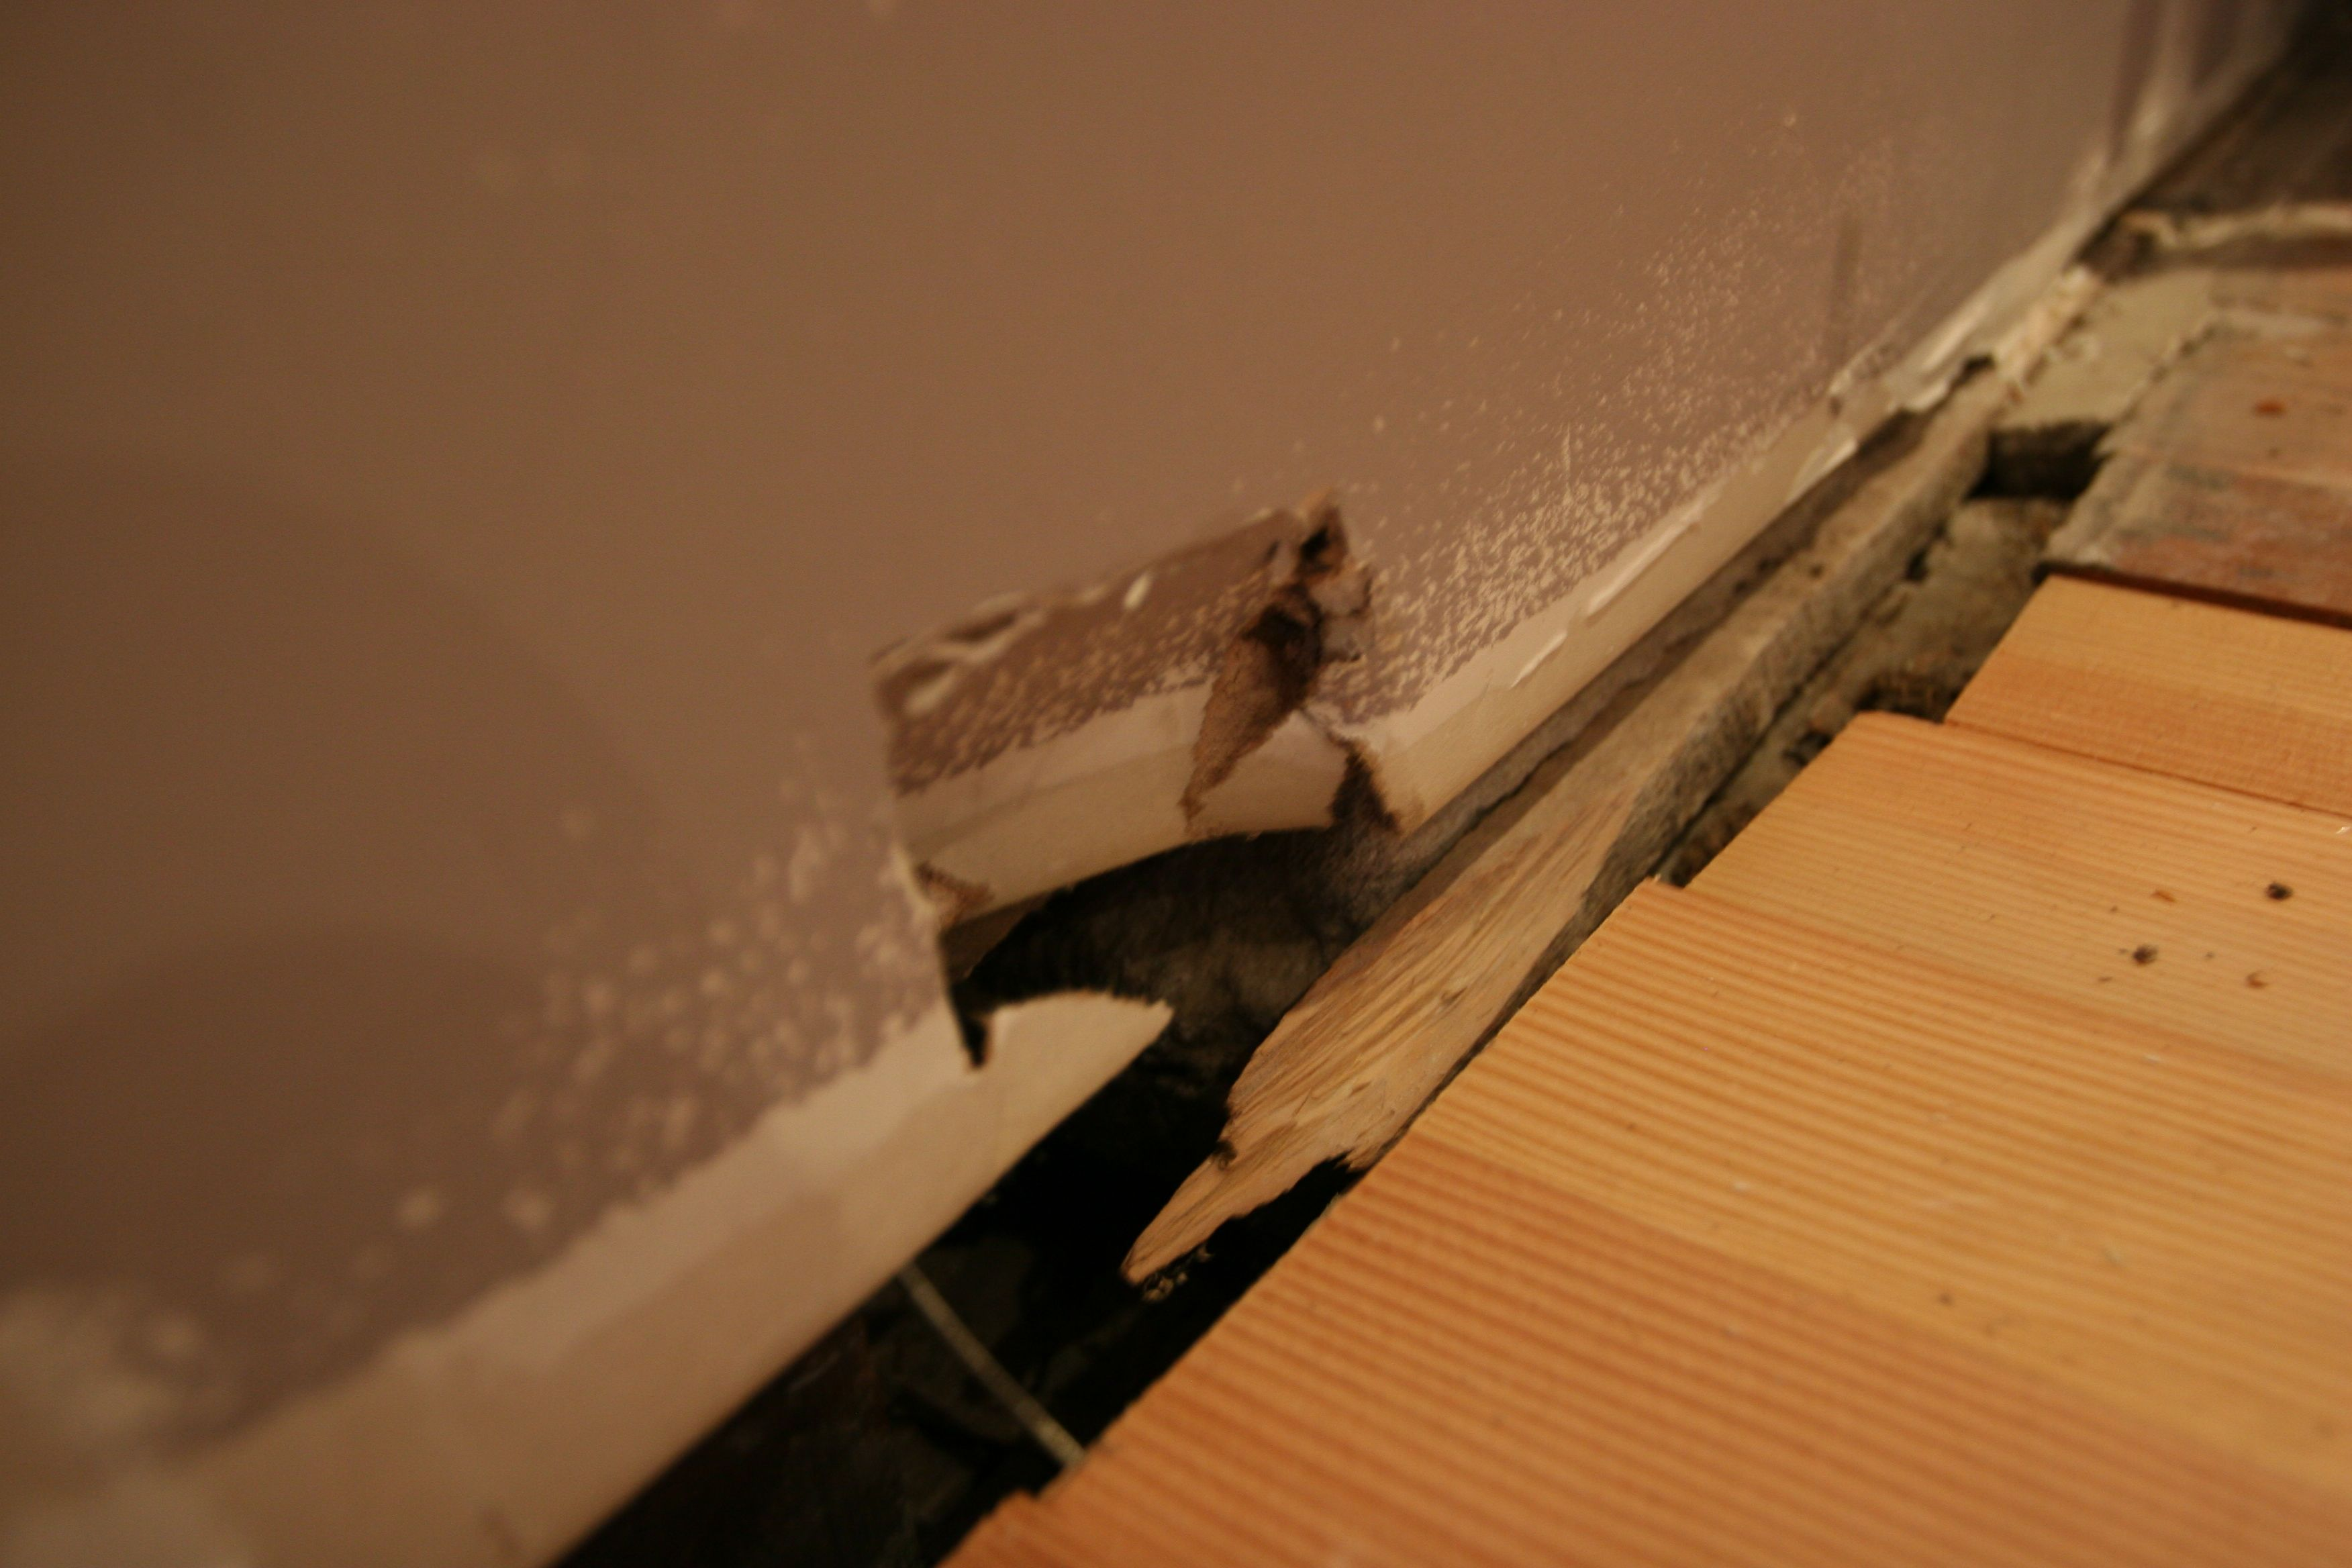 Oops! Good thing this will be behind cabinets, and doesn't need to be repaired in any significant manner.